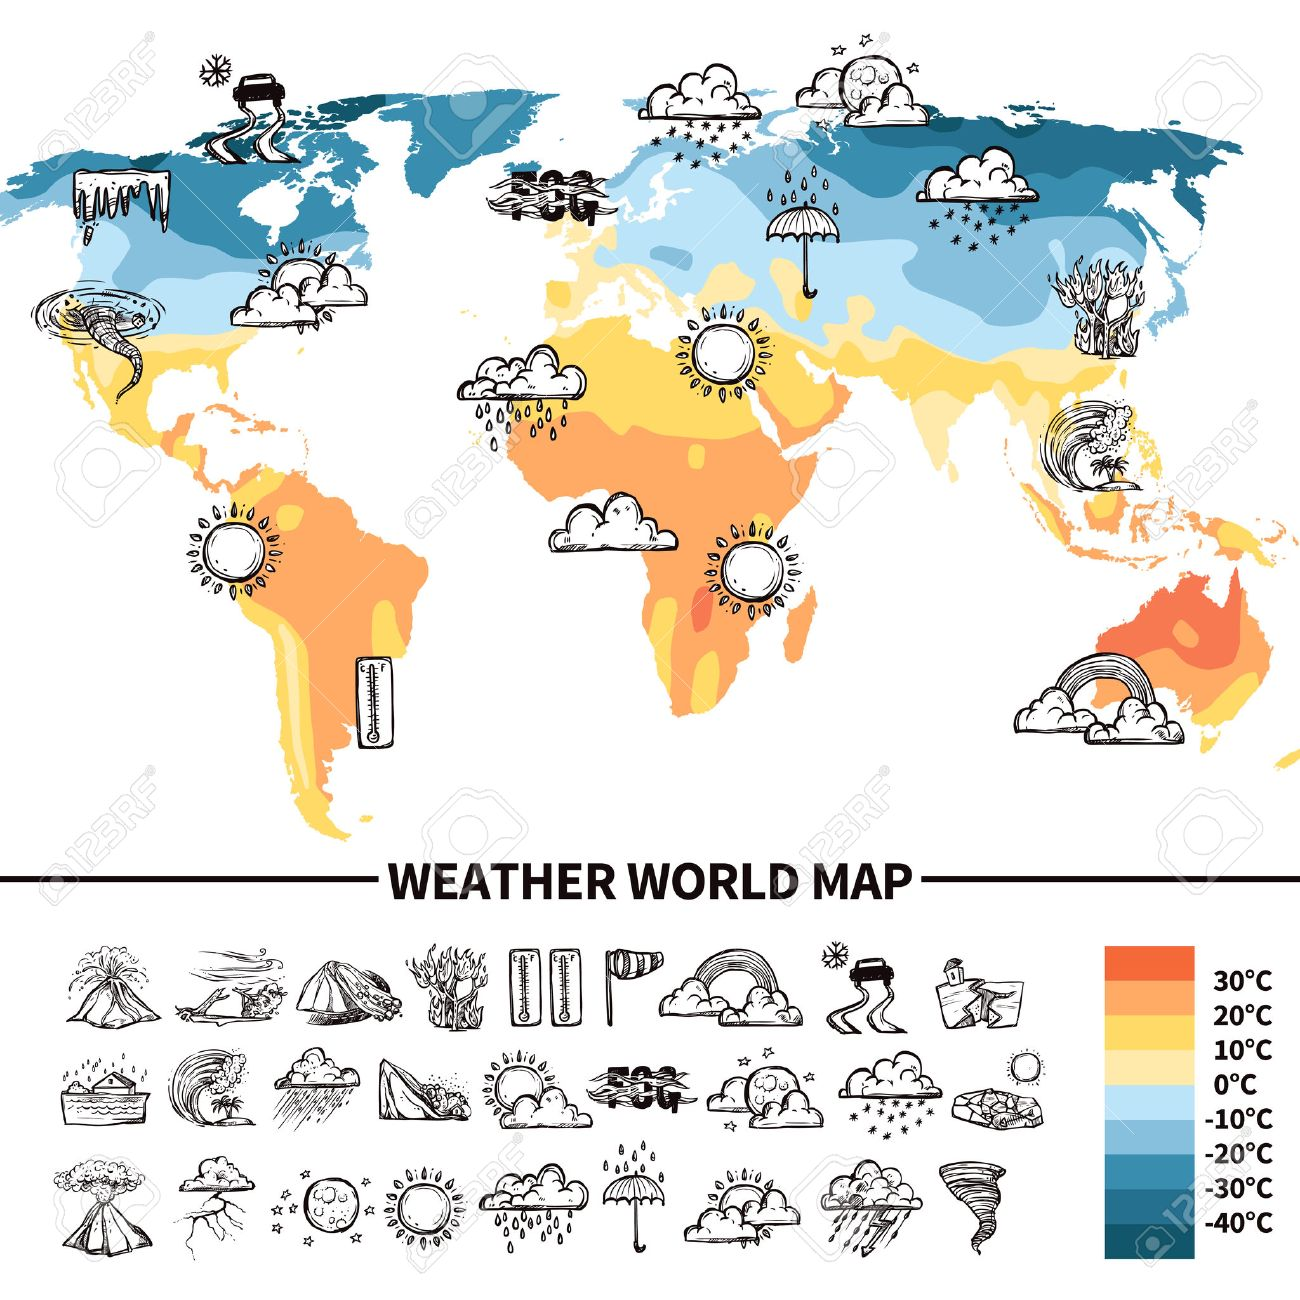 Meteorology Design Concept With Sketch Weather Forecast Symbols